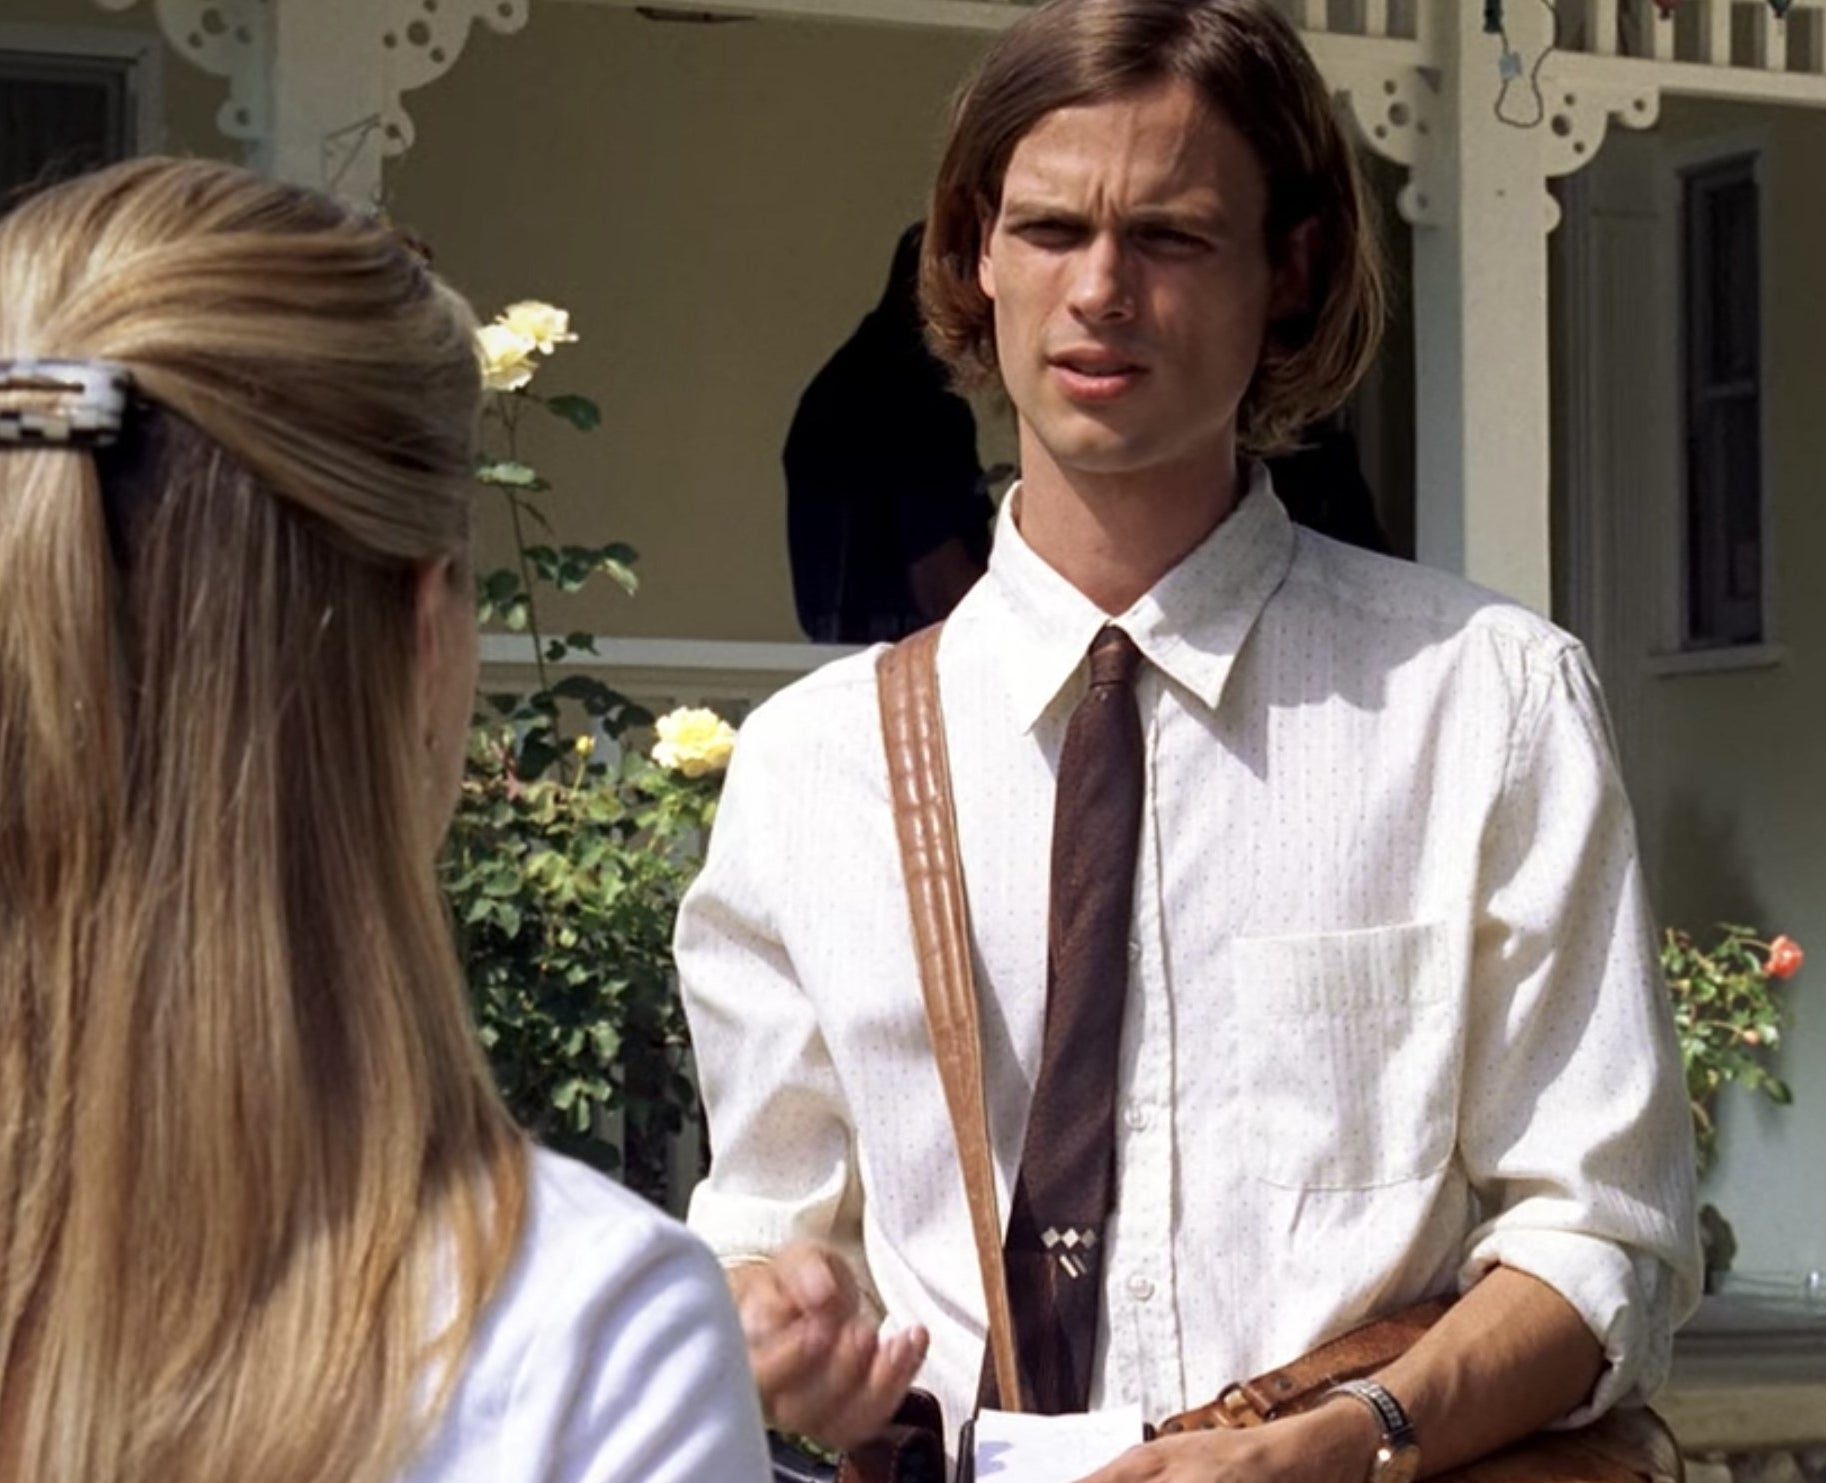 Spencer Reid from Criminal Minds talking in front of a house